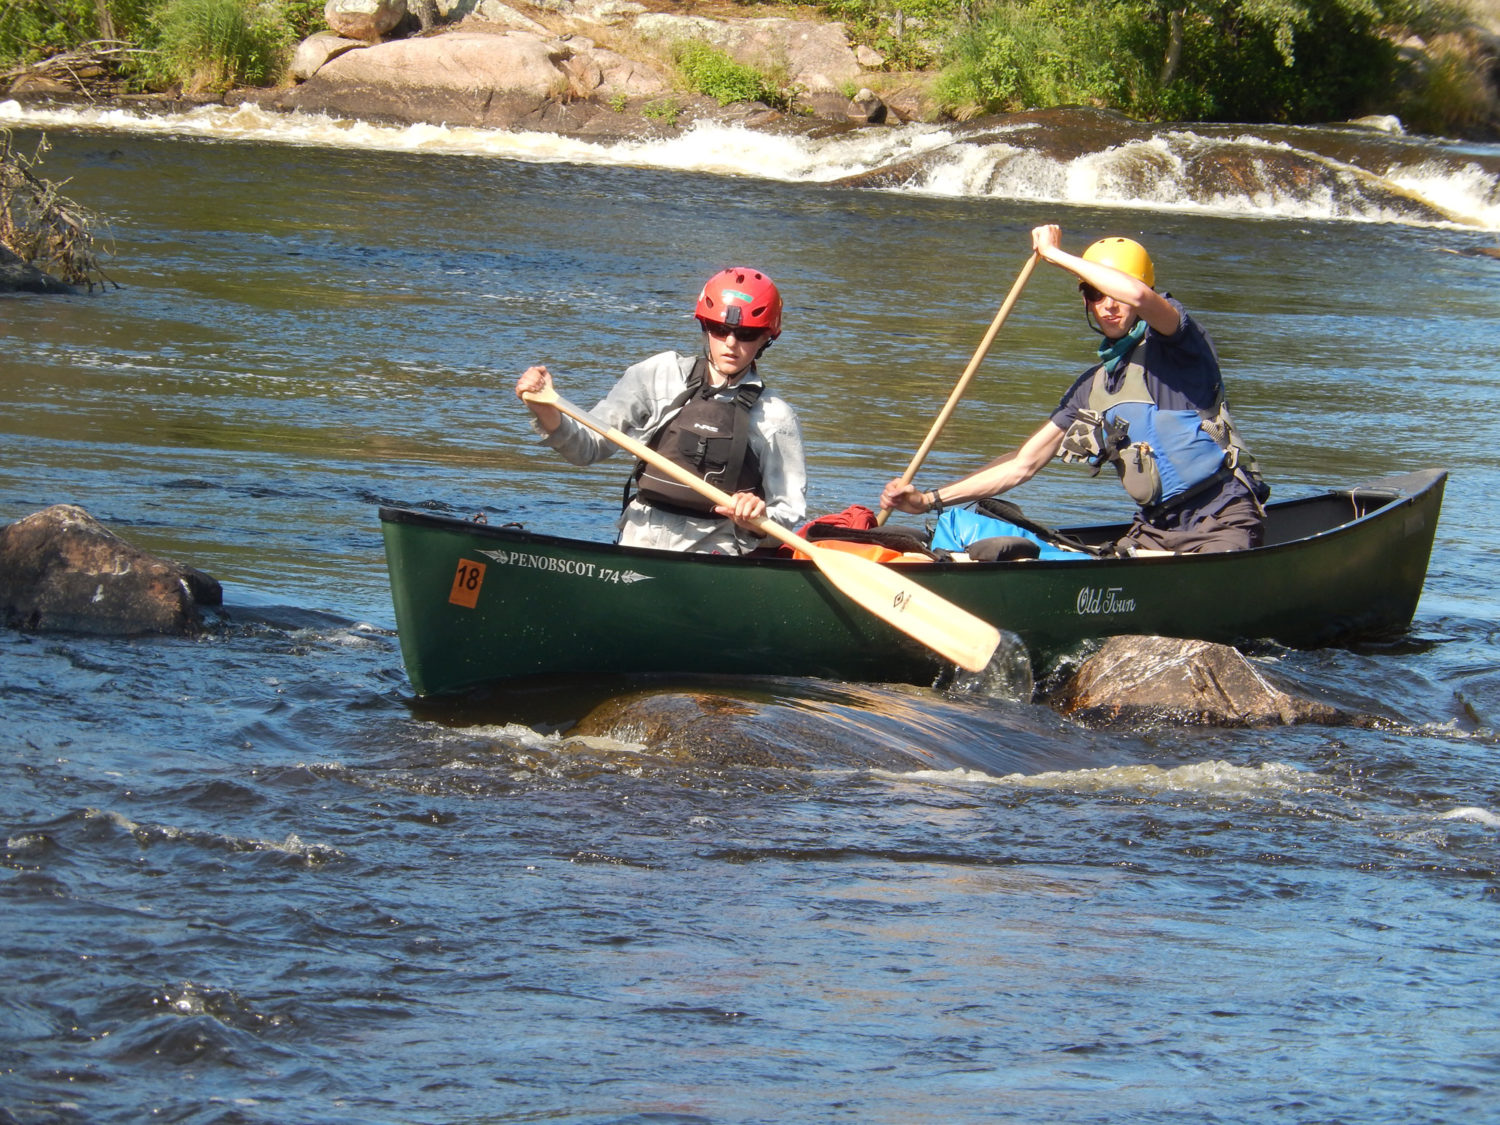 Boys rowing in a canoe on a river